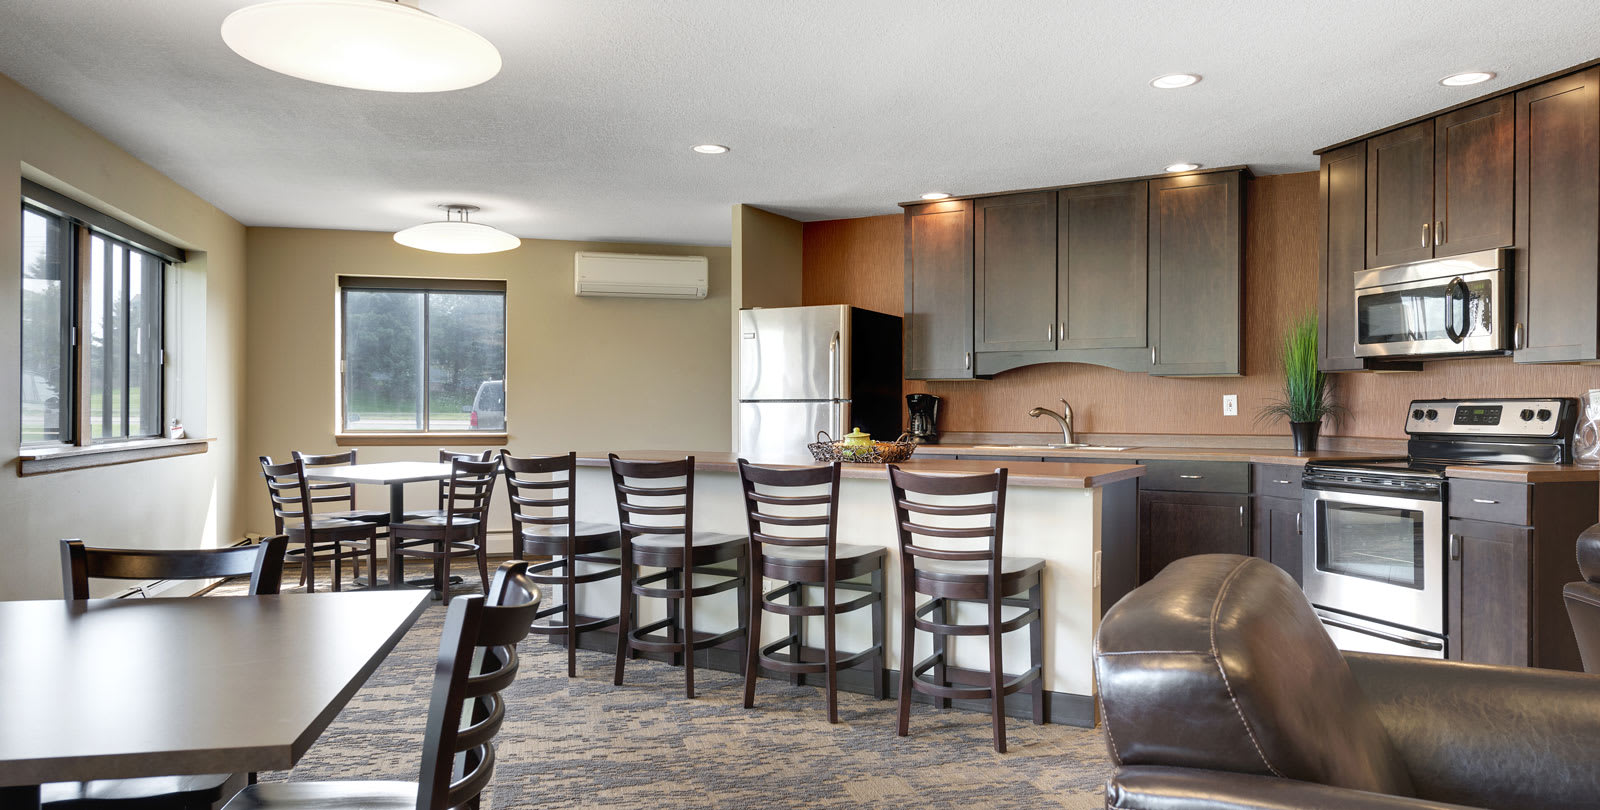 Valley Pond Apartments in Apple Valley, MN Community Kitchen